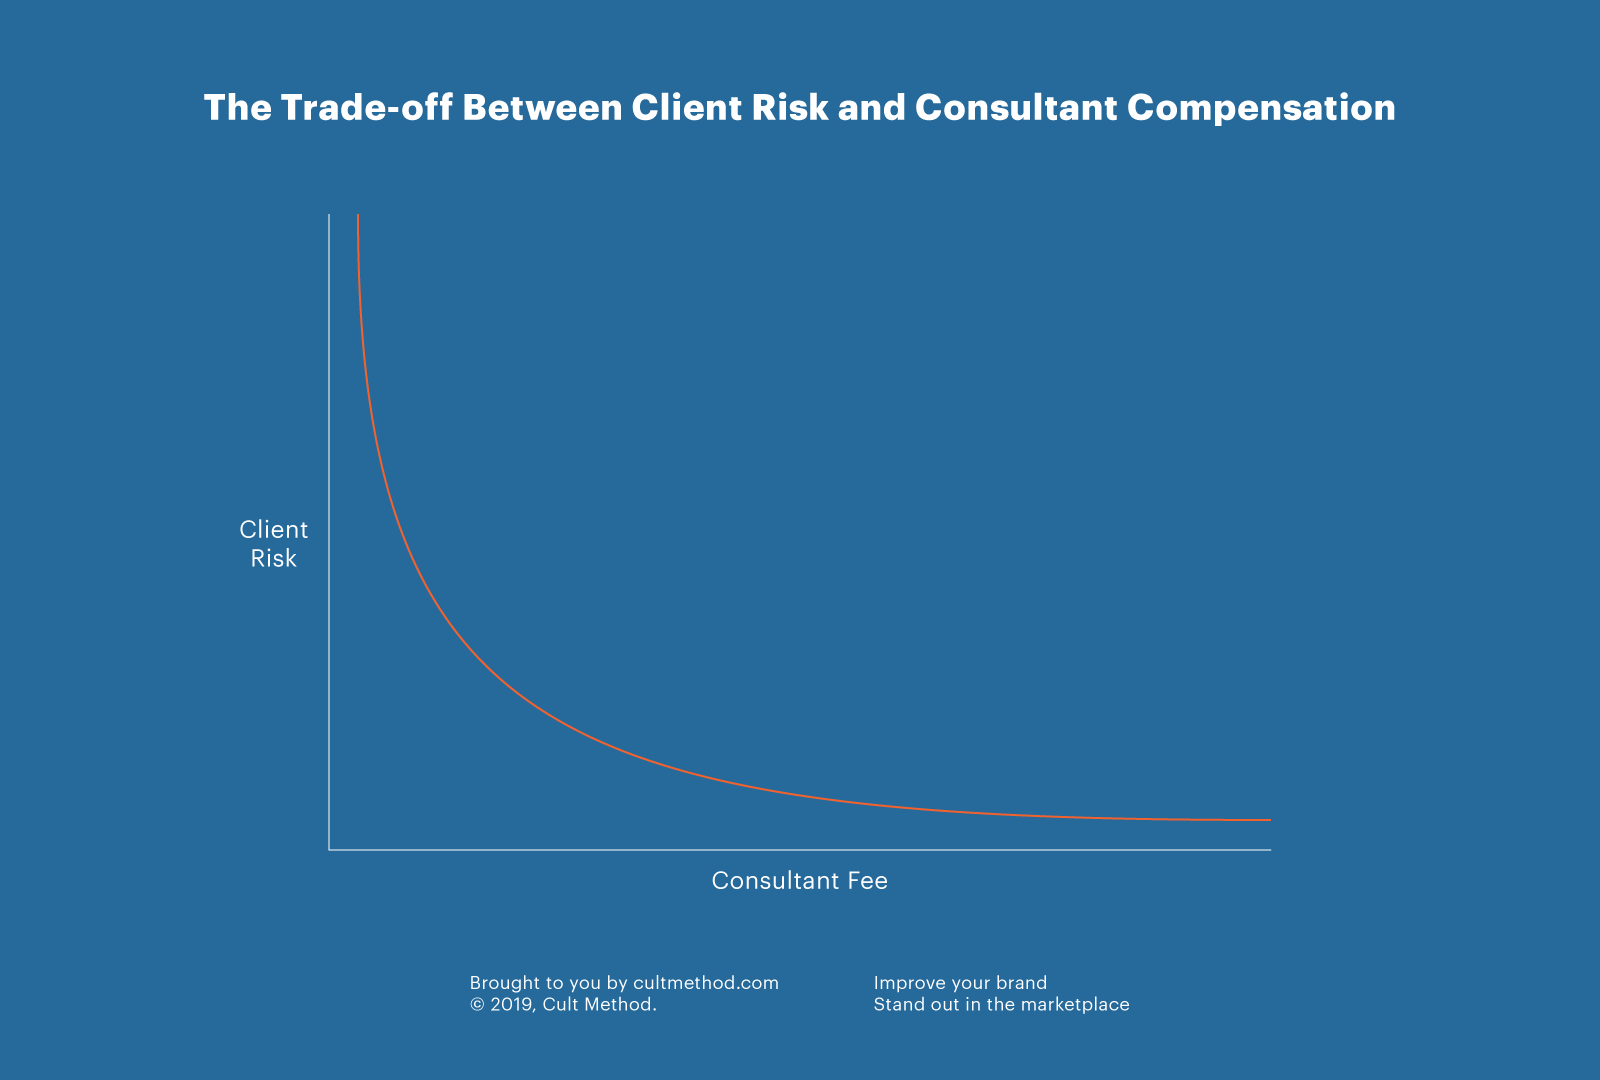 The trade-off between client risk and consultant compensation